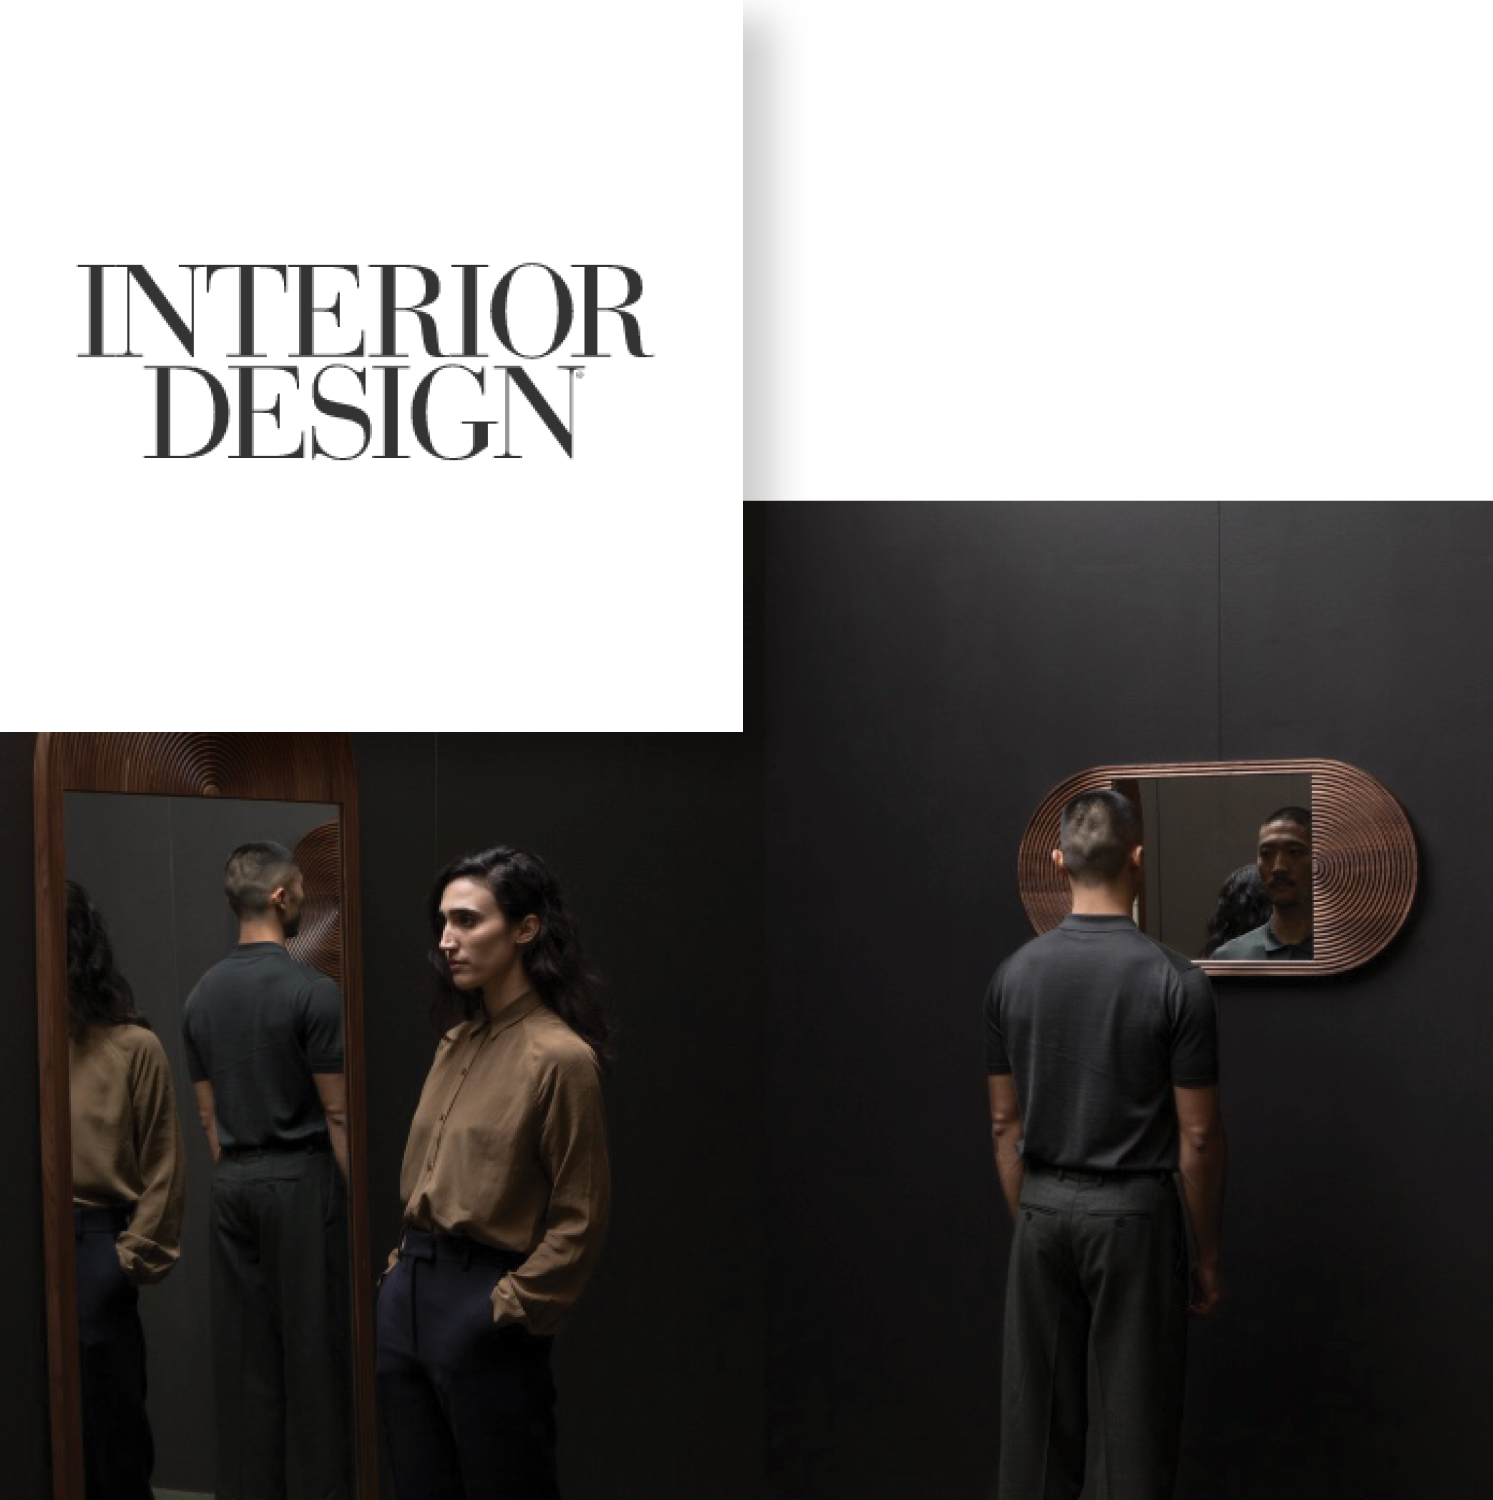 Interior Design, March 2018